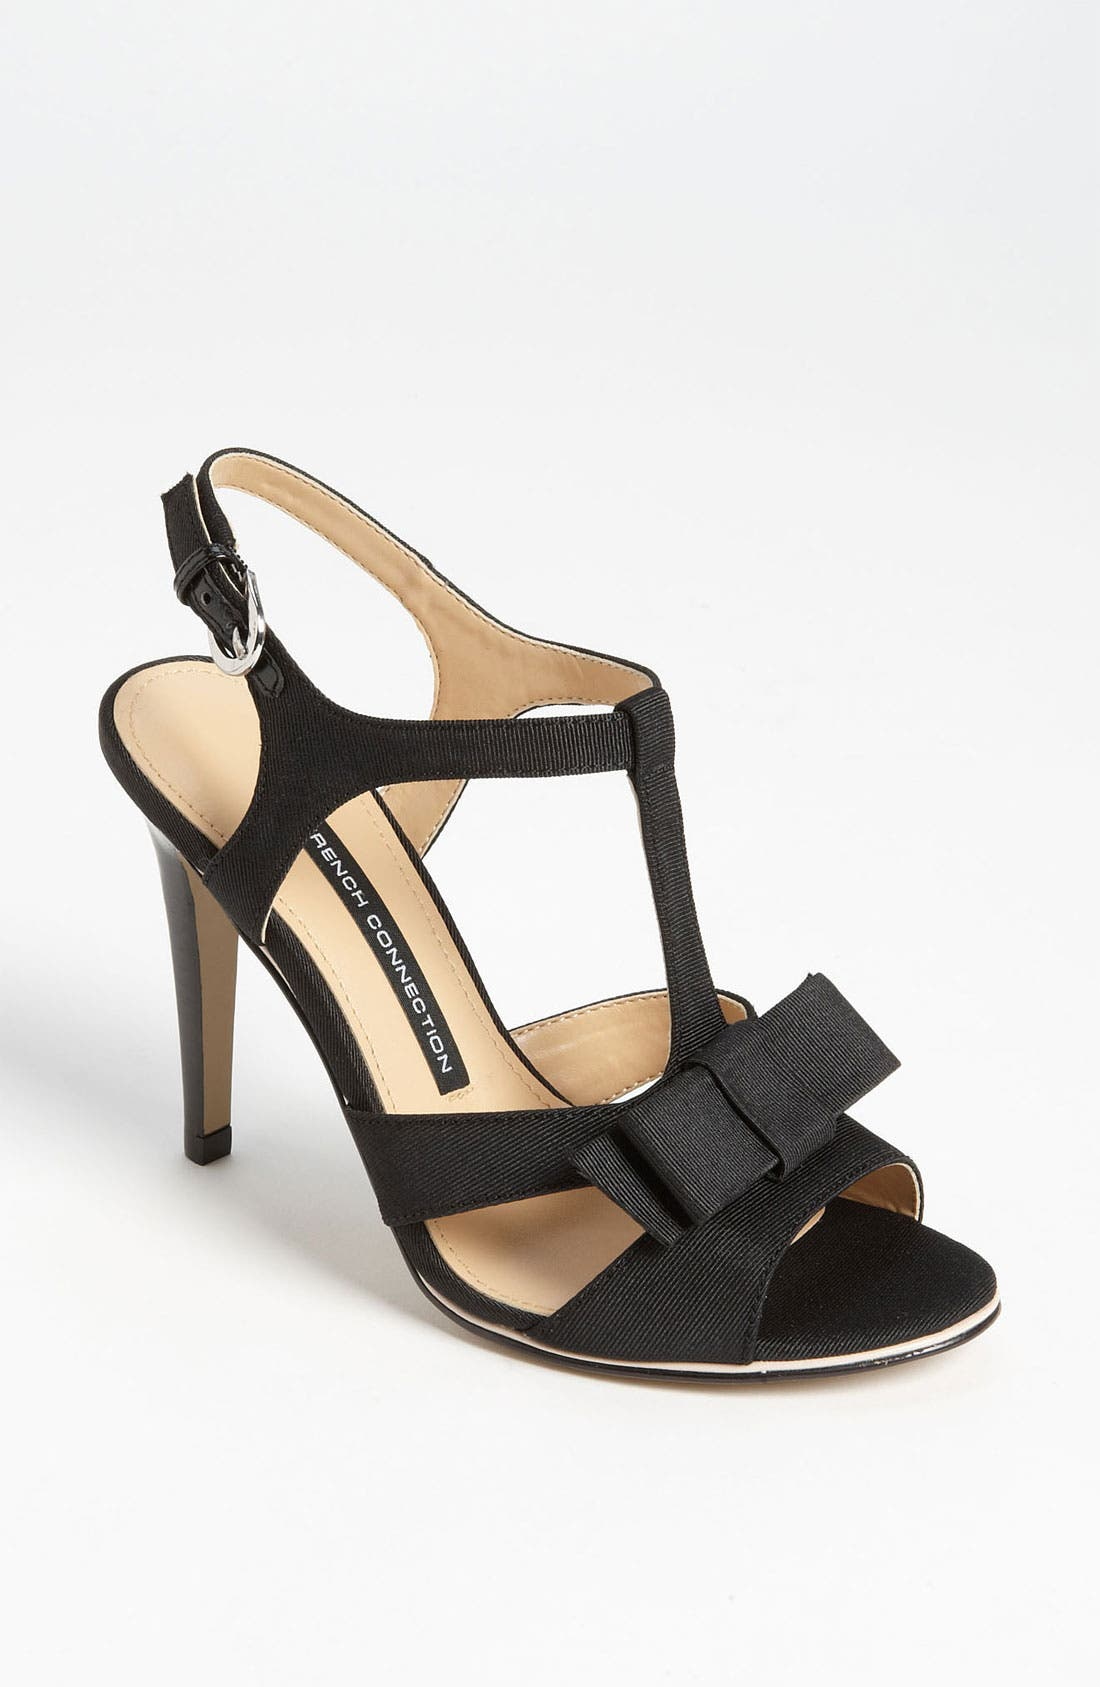 Alternate Image 1 Selected - French Connection 'Nora' Sandal